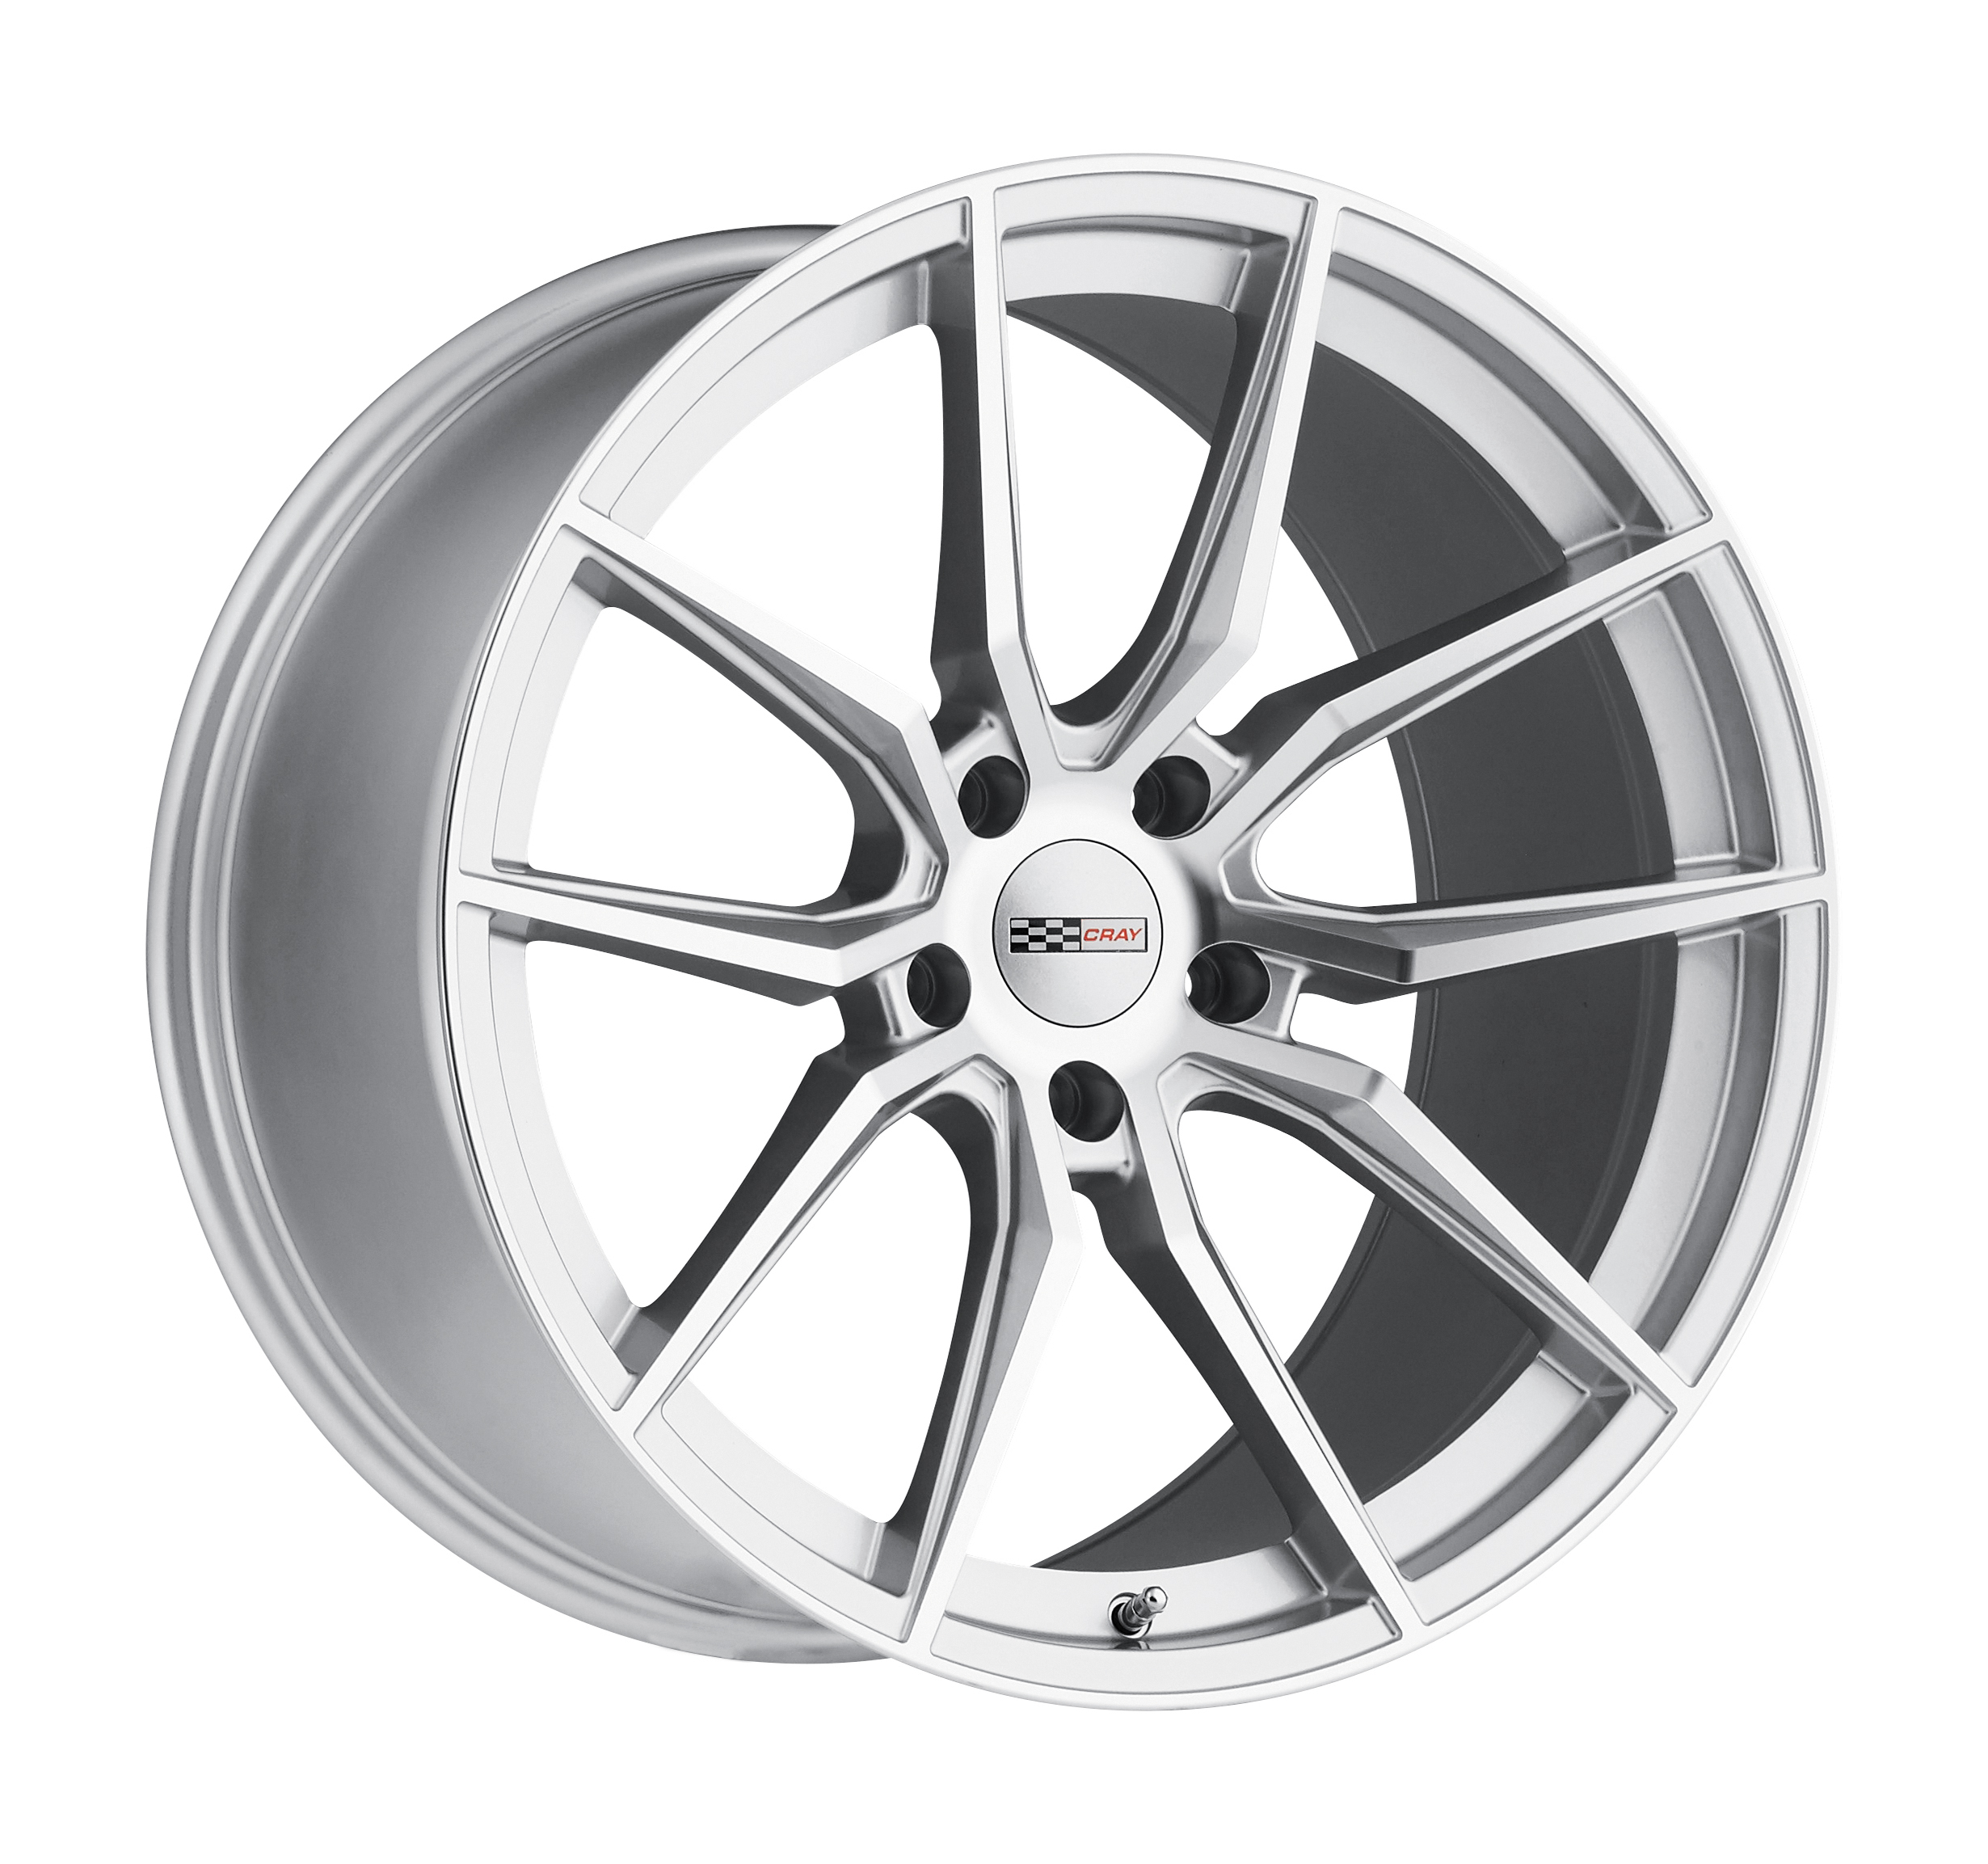 Cray Spider Corvette Wheel Set- C7 Stingray and Z51